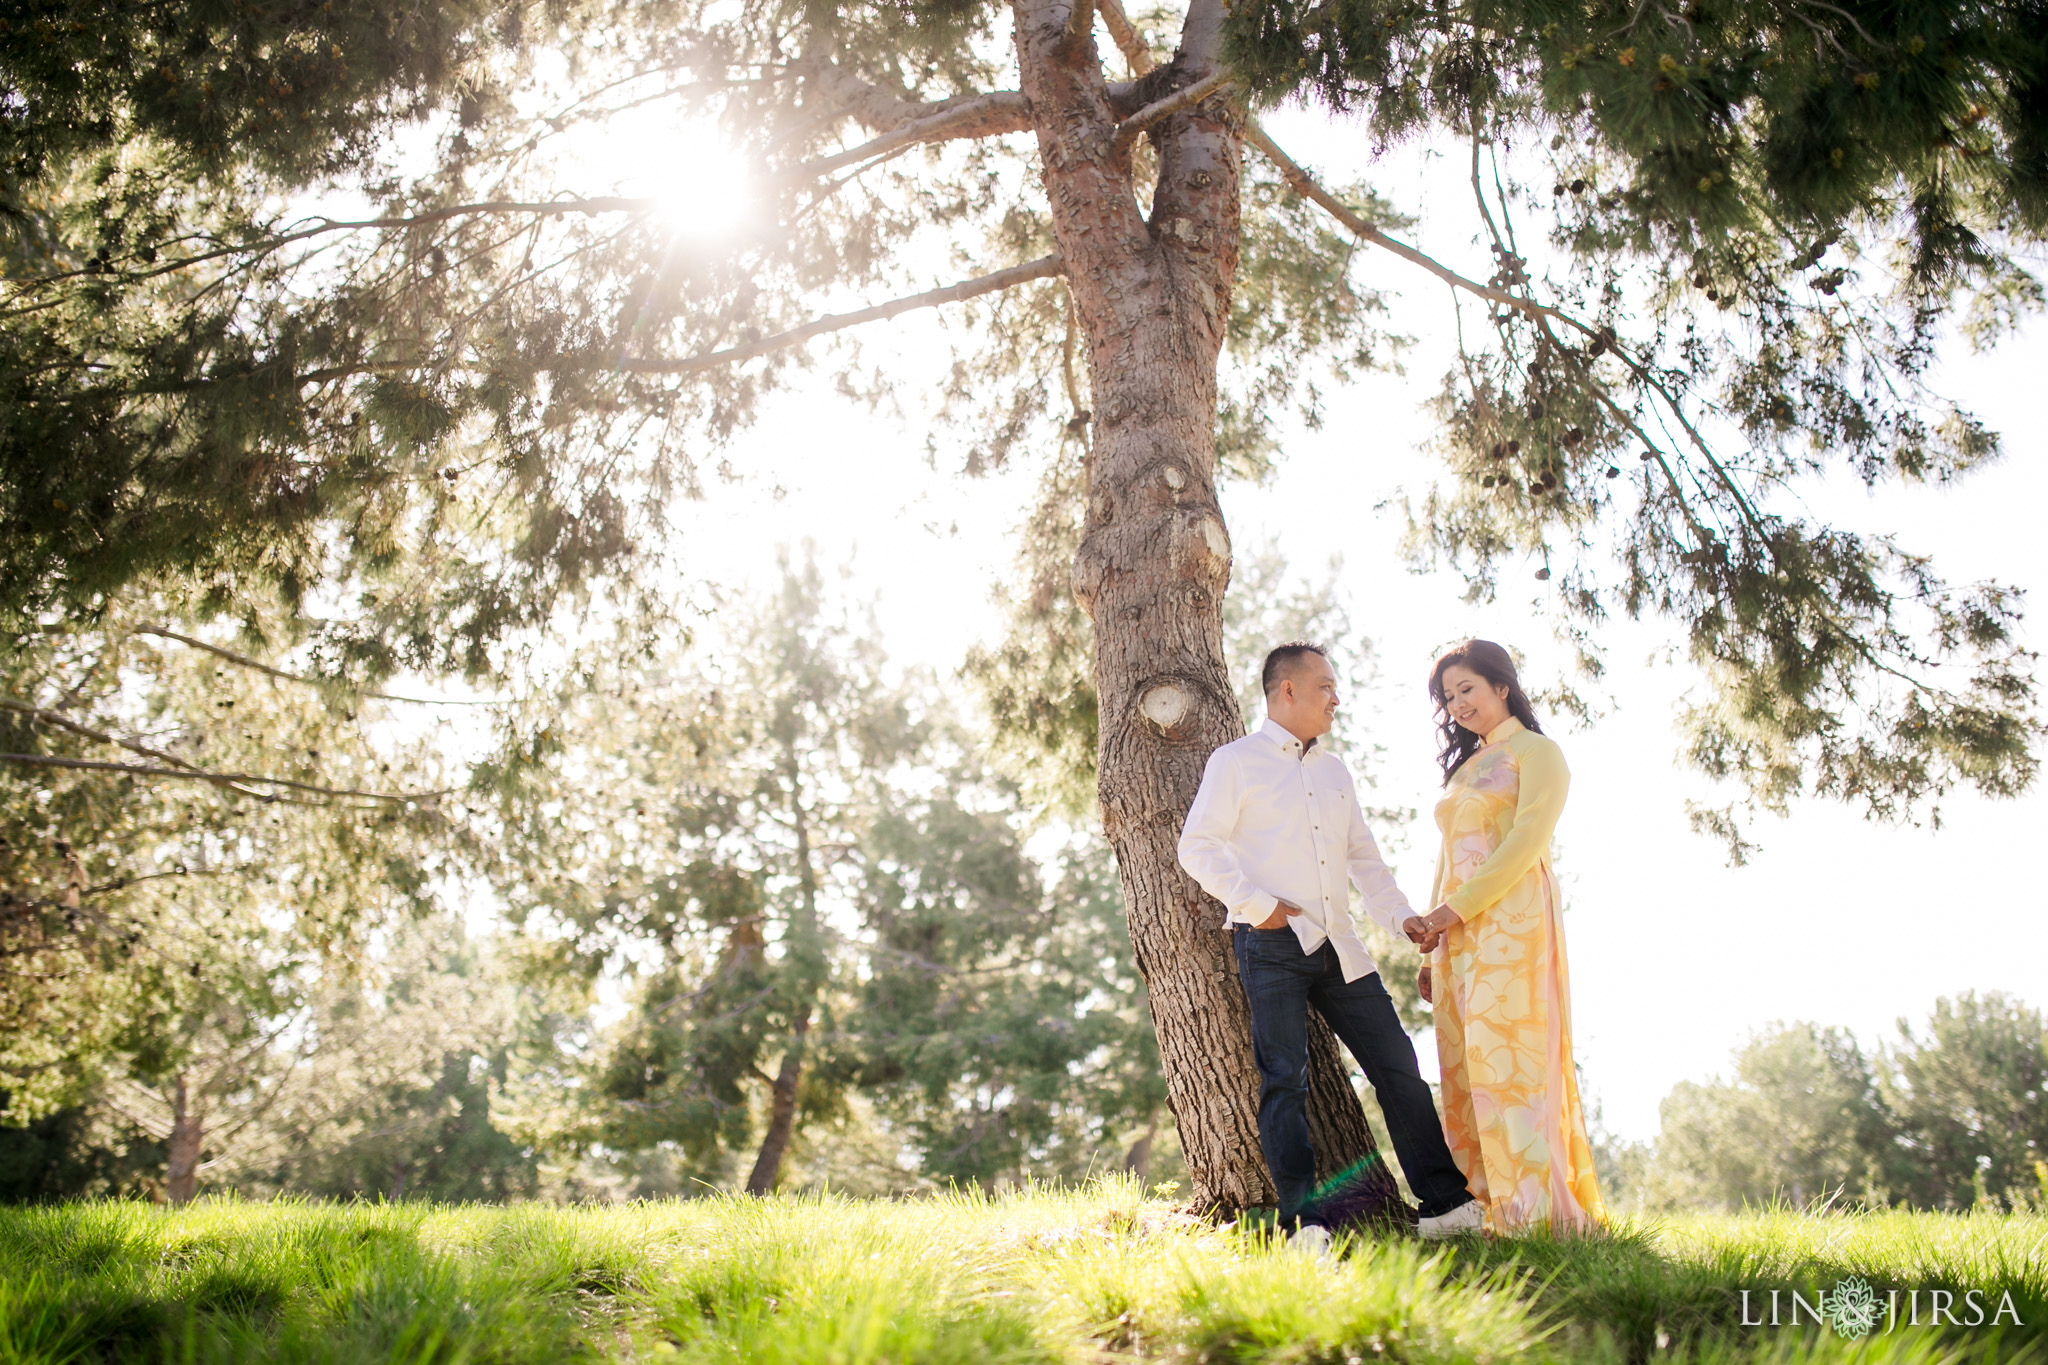 03 Jeffrey Open Space Trail Irvine Engagement Photography